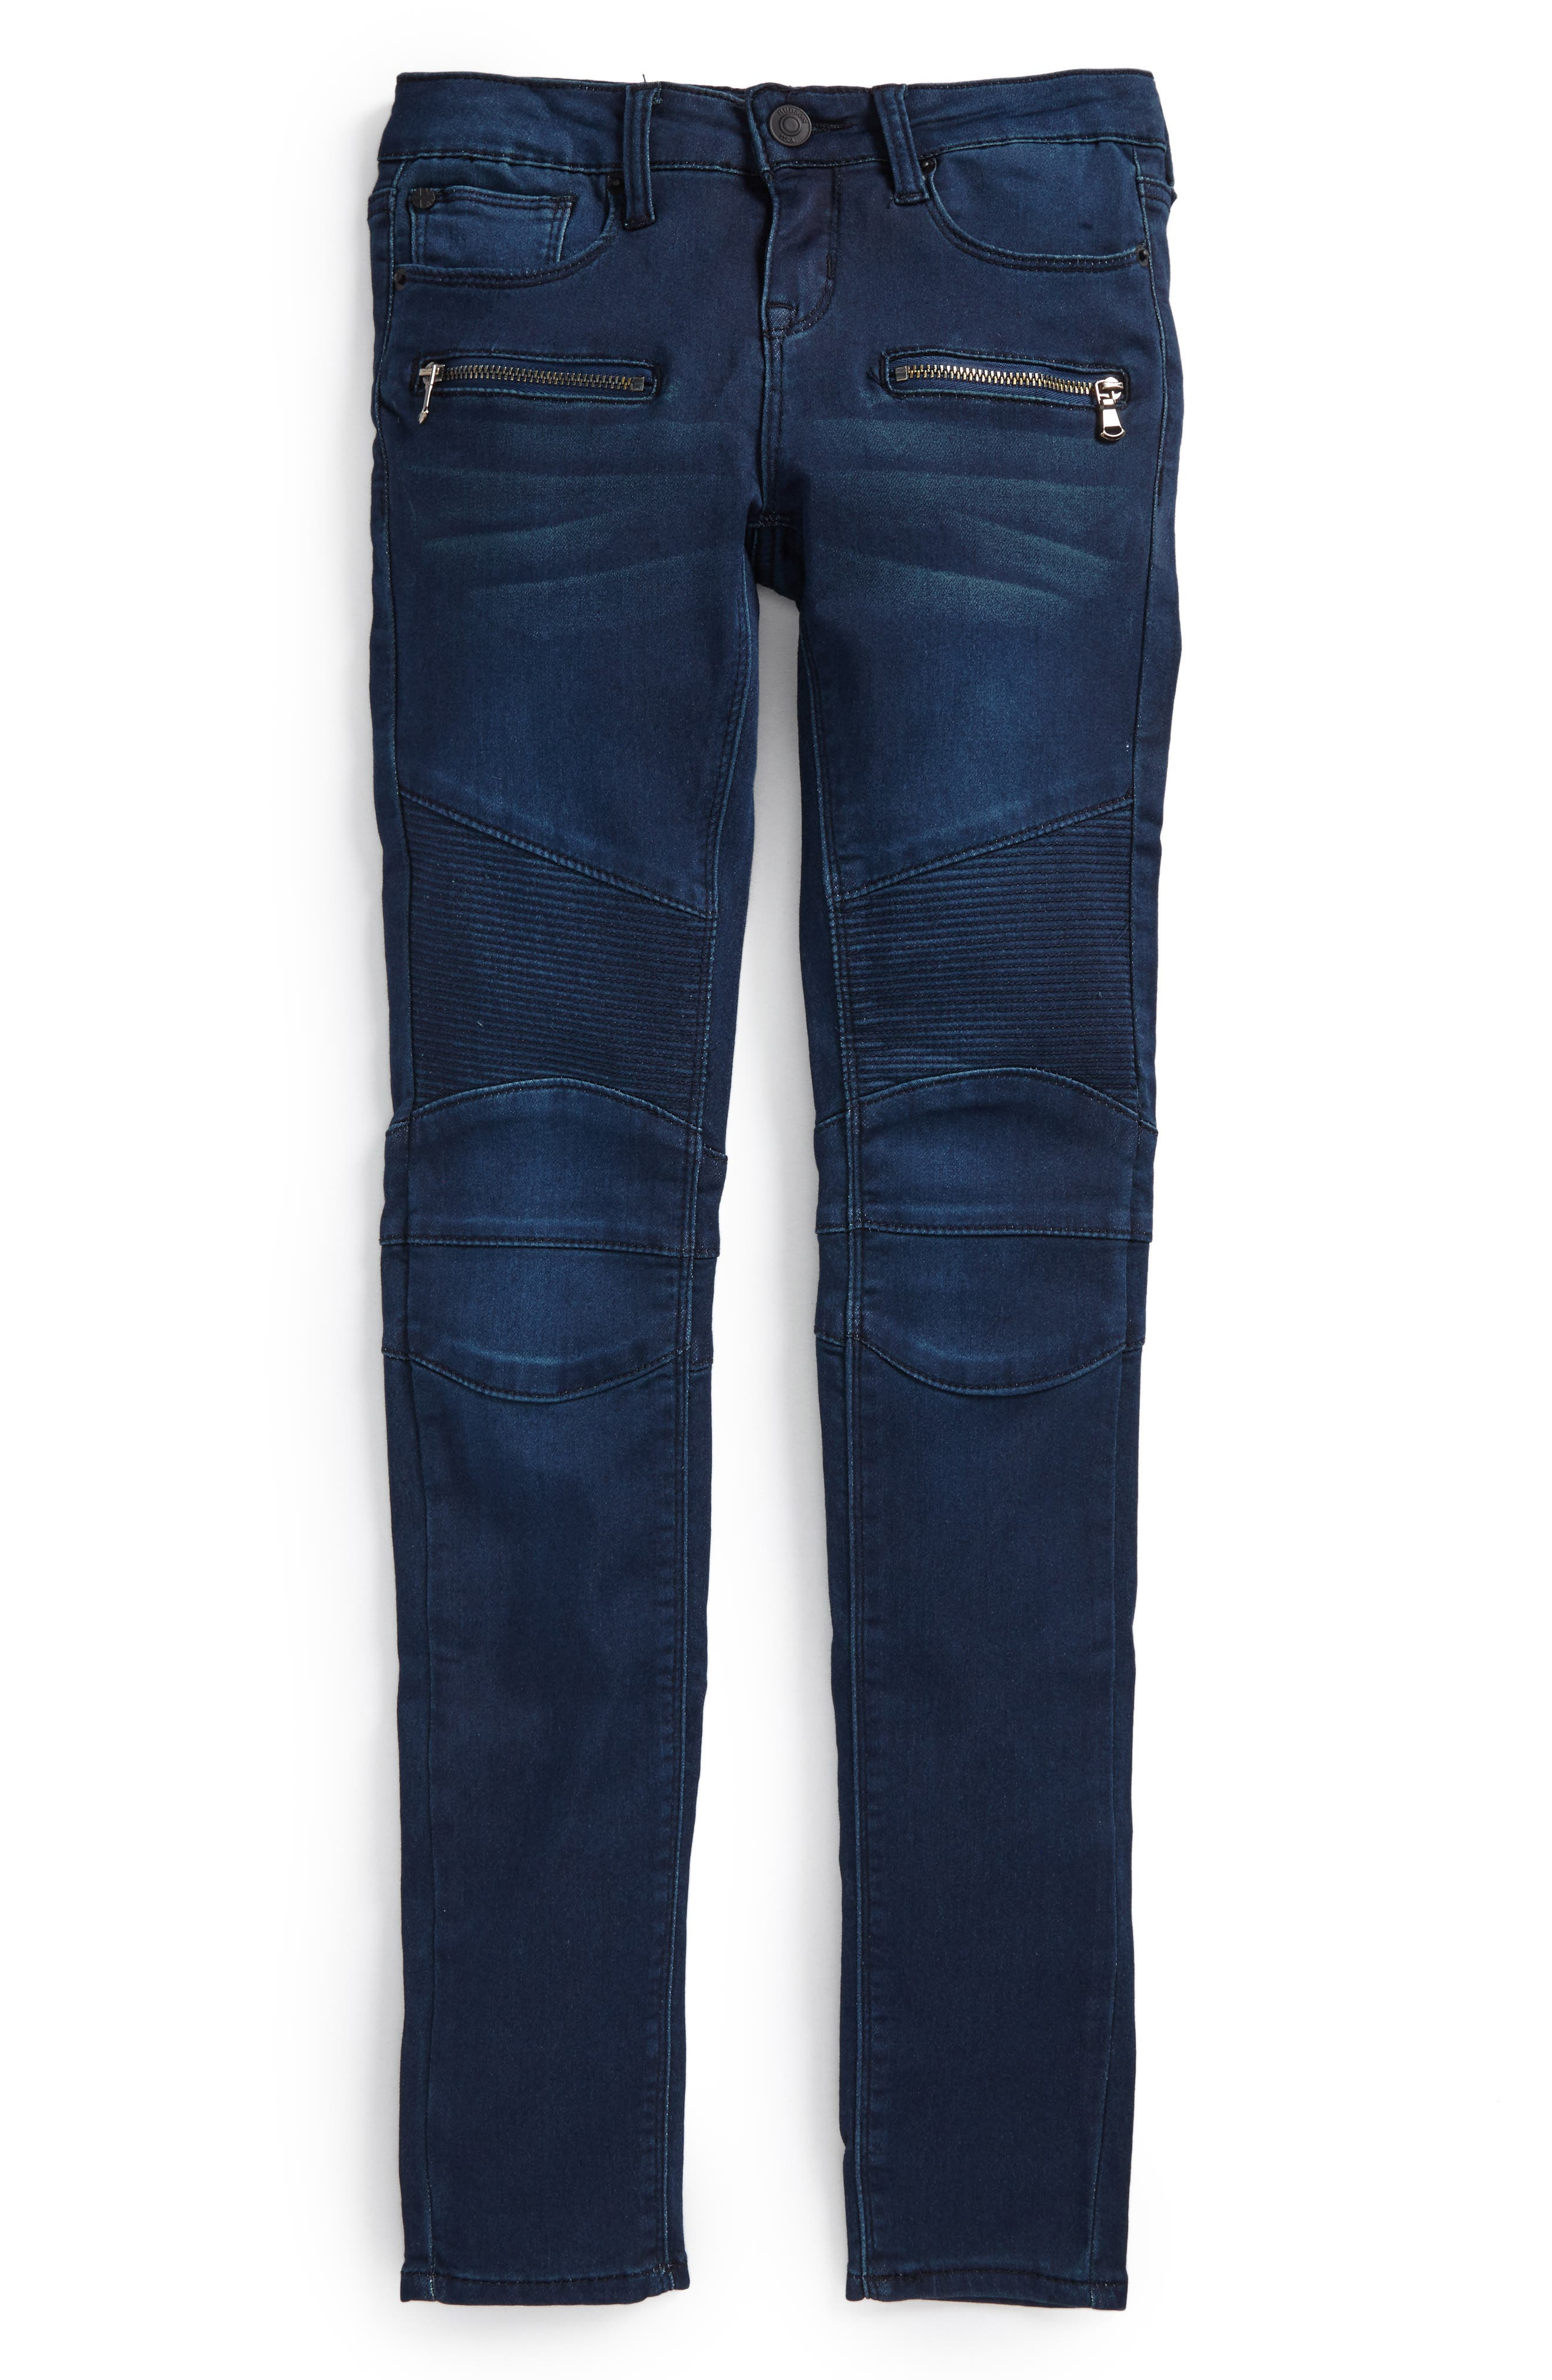 Main Image - Hudson Kids French Terry Moto Jeans (Big Girls)